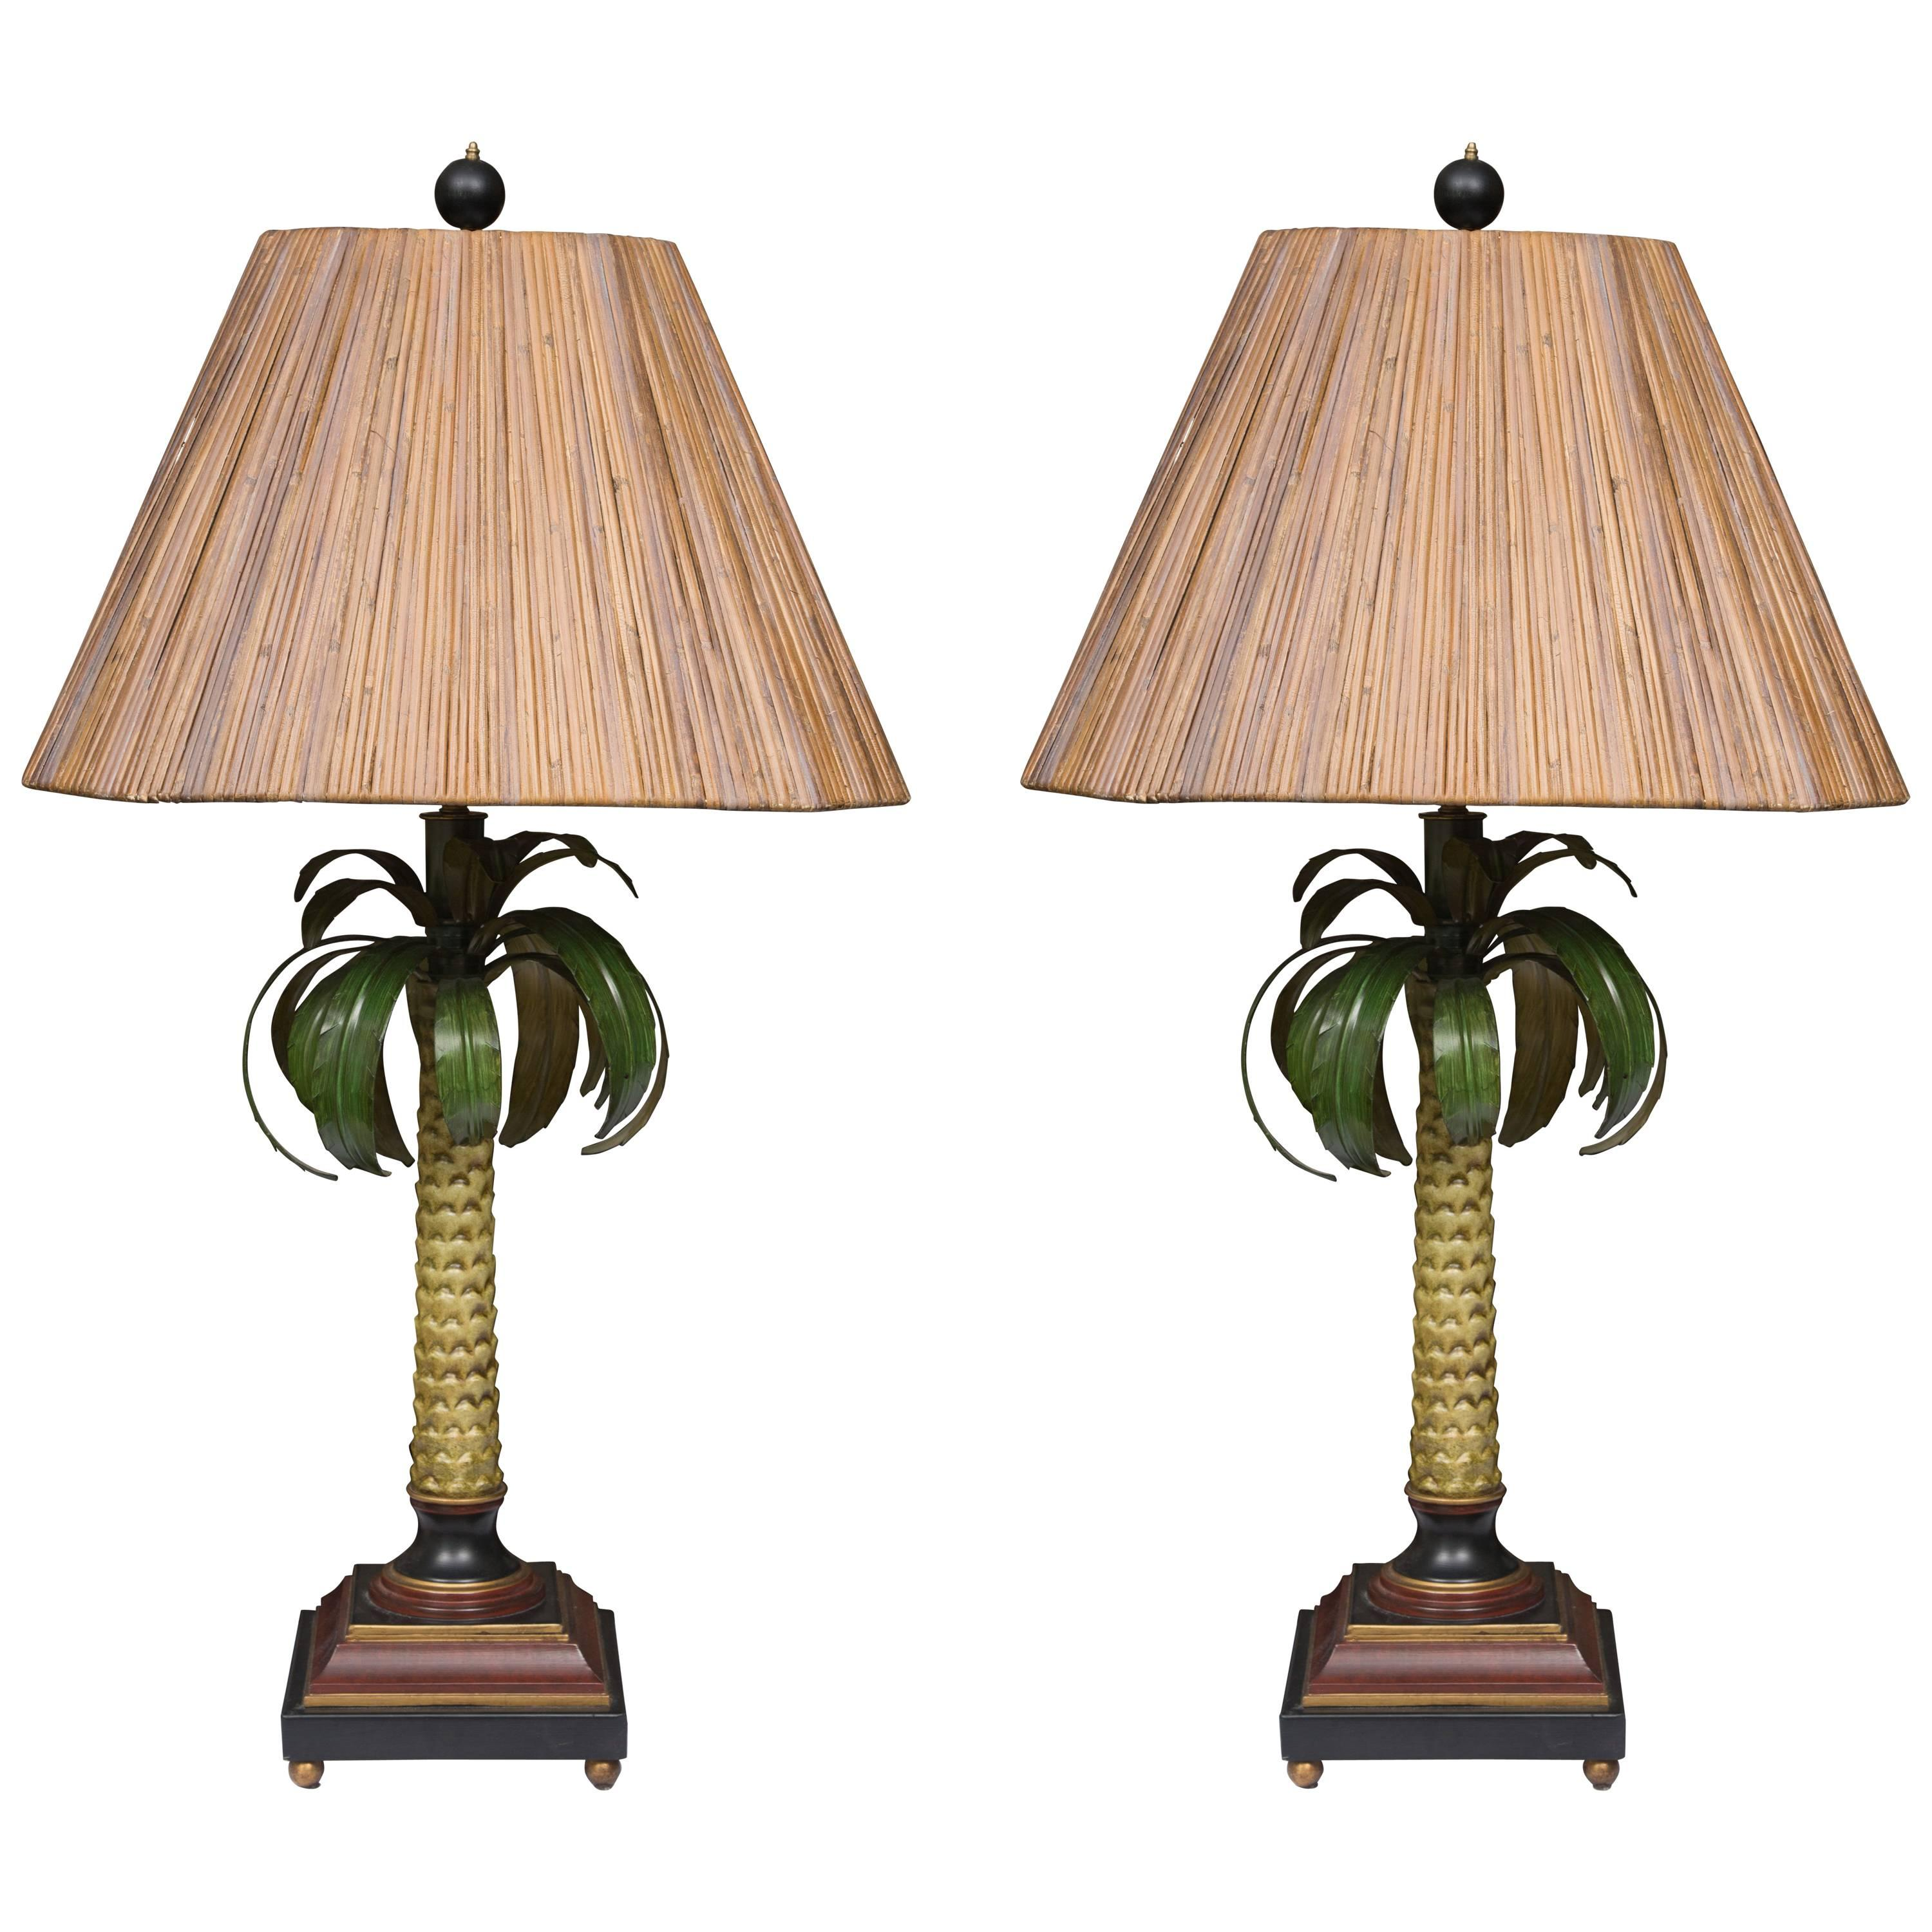 Hand-Painted Palm Tree Lamps with Custom Bamboo Shades